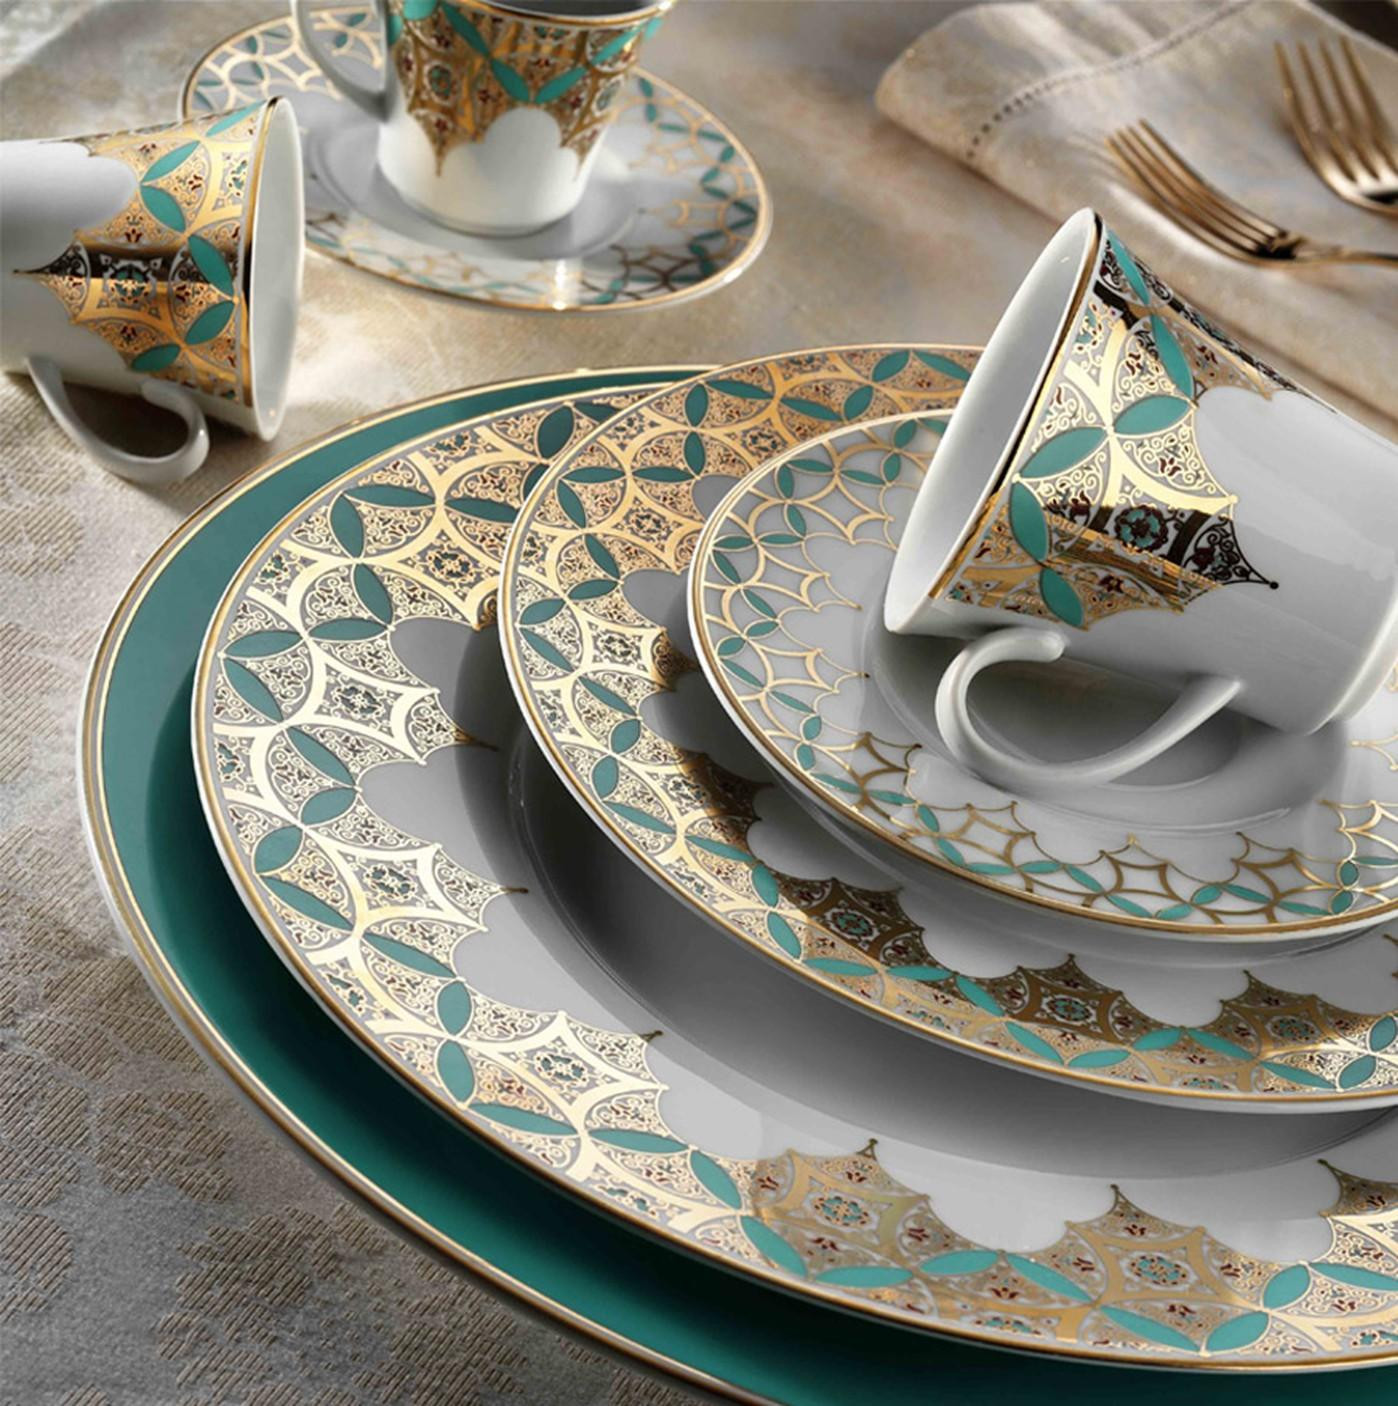 Kutahya Porselen IRIS 97 Pieces 8839 Patterned Dinnerware Set